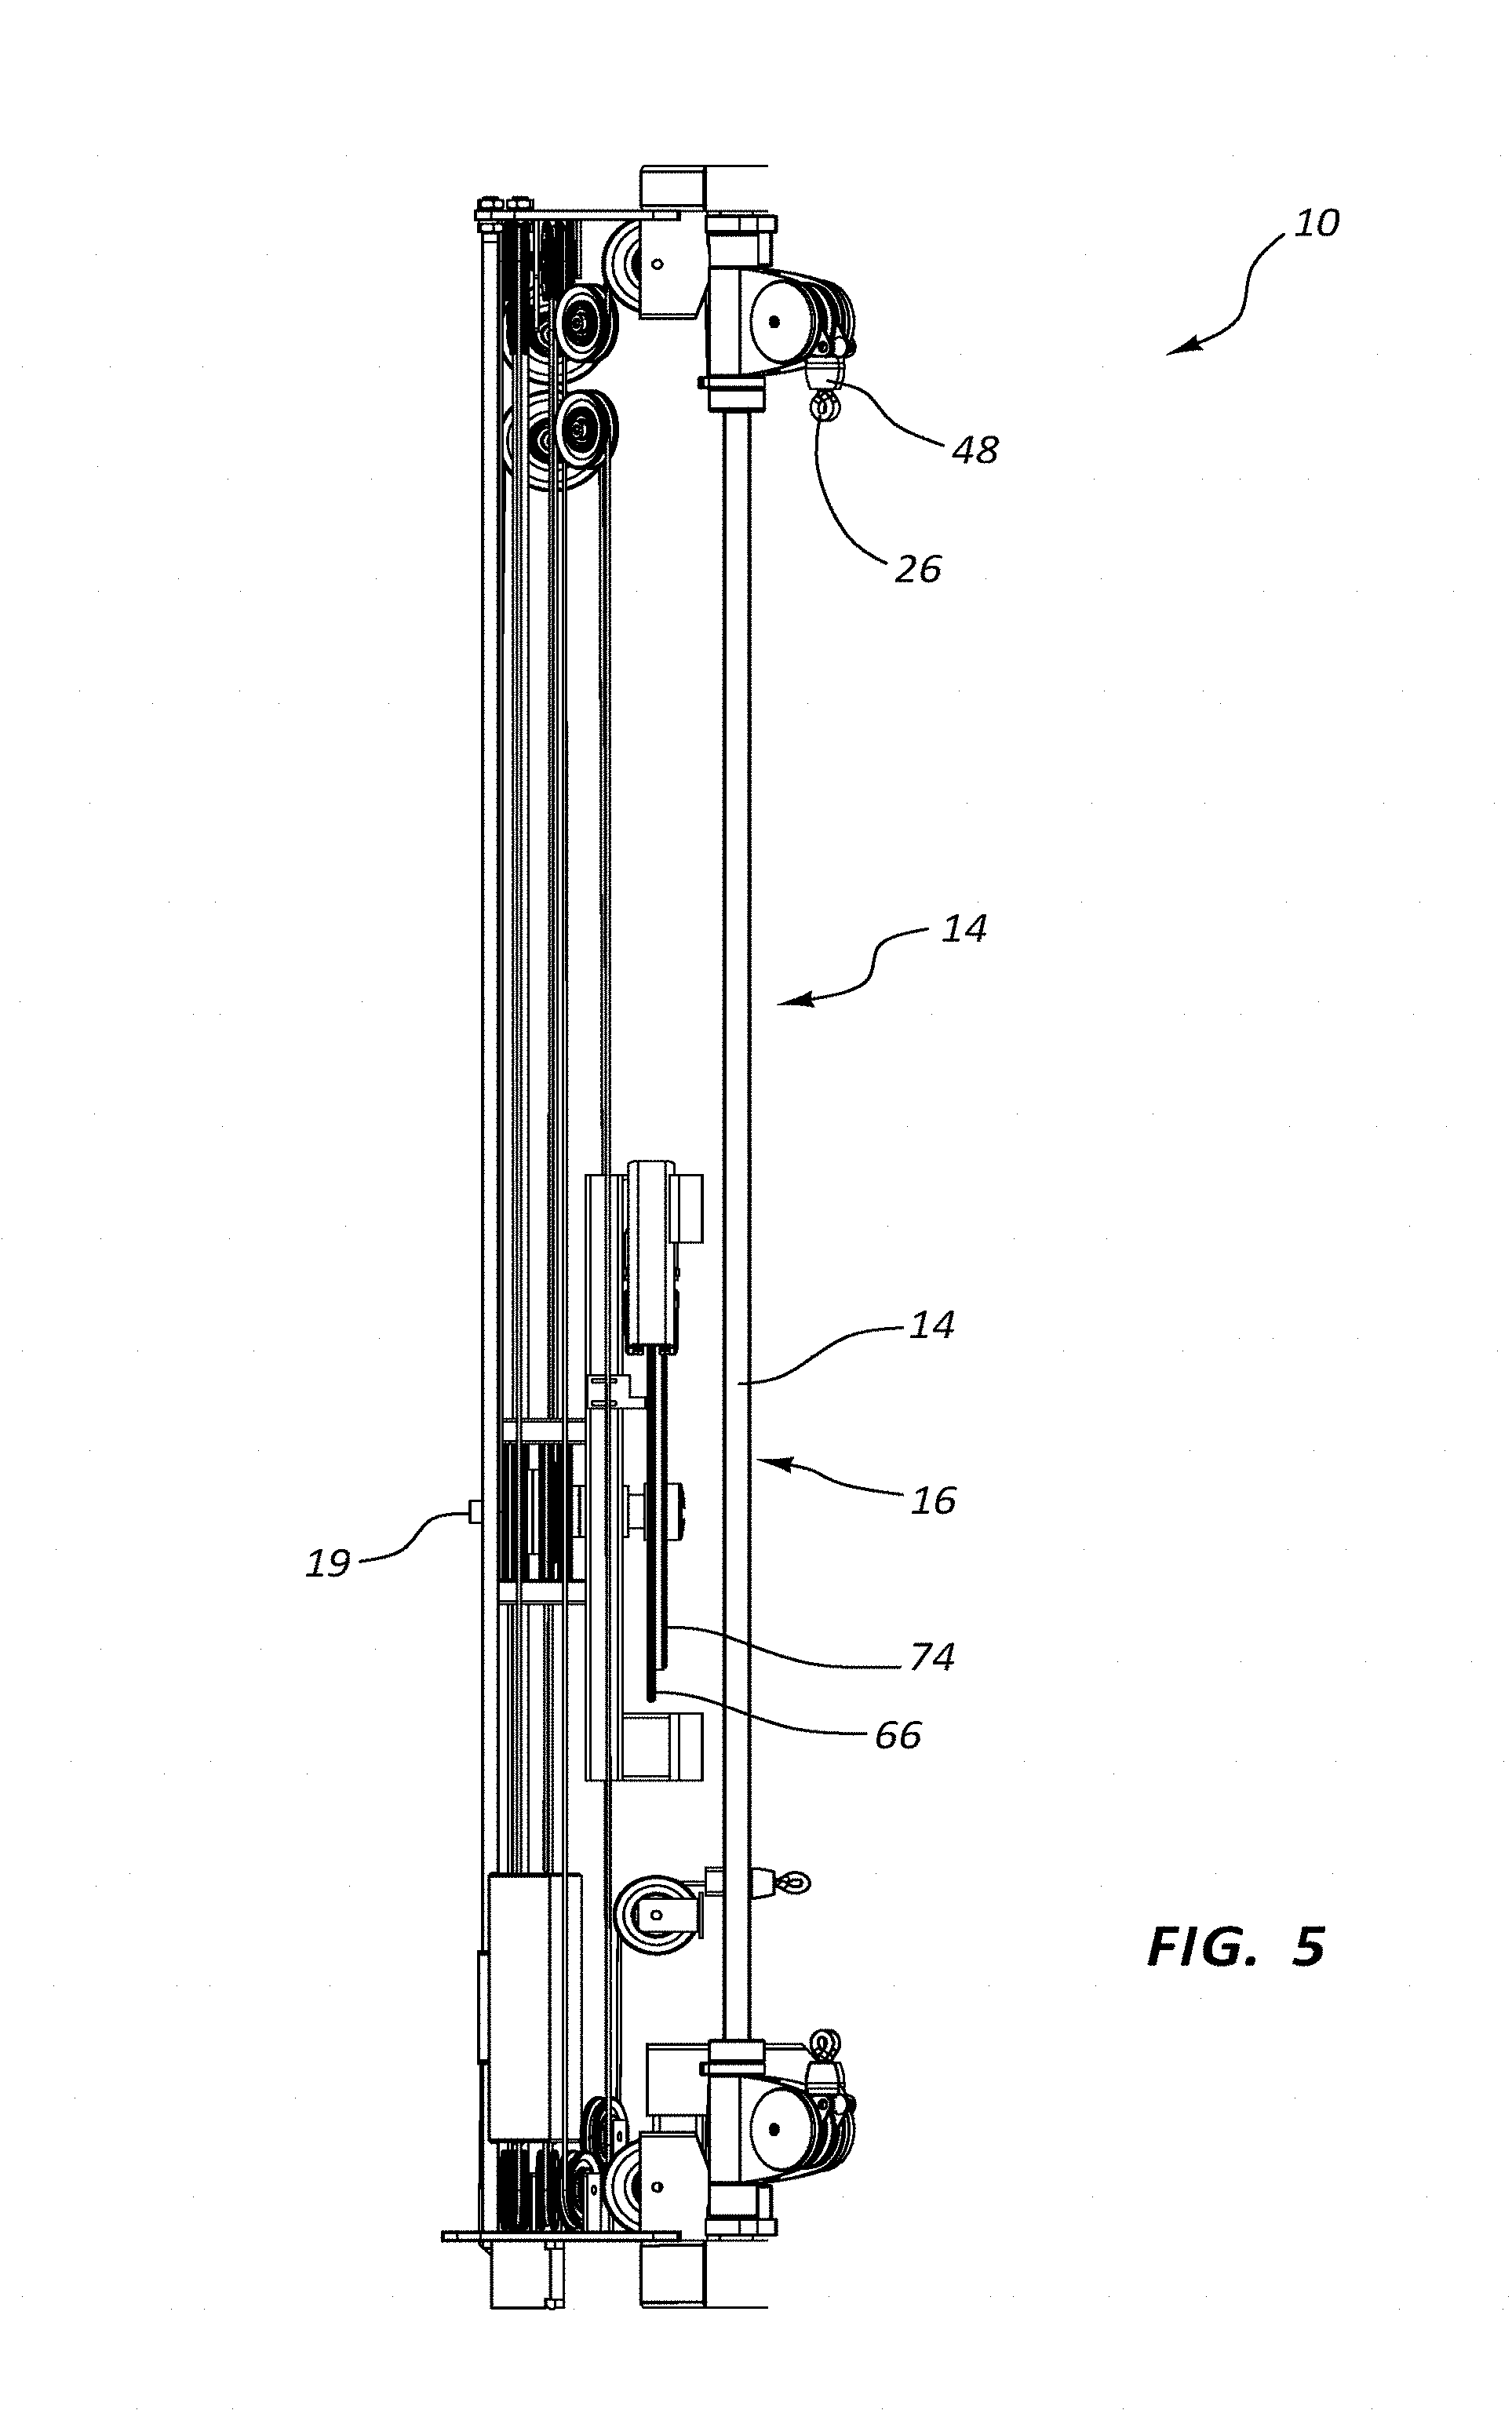 Remarkable Us10188890B2 Magnetic Resistance Mechanism In A Cable Machine Wiring Cloud Hisonuggs Outletorg